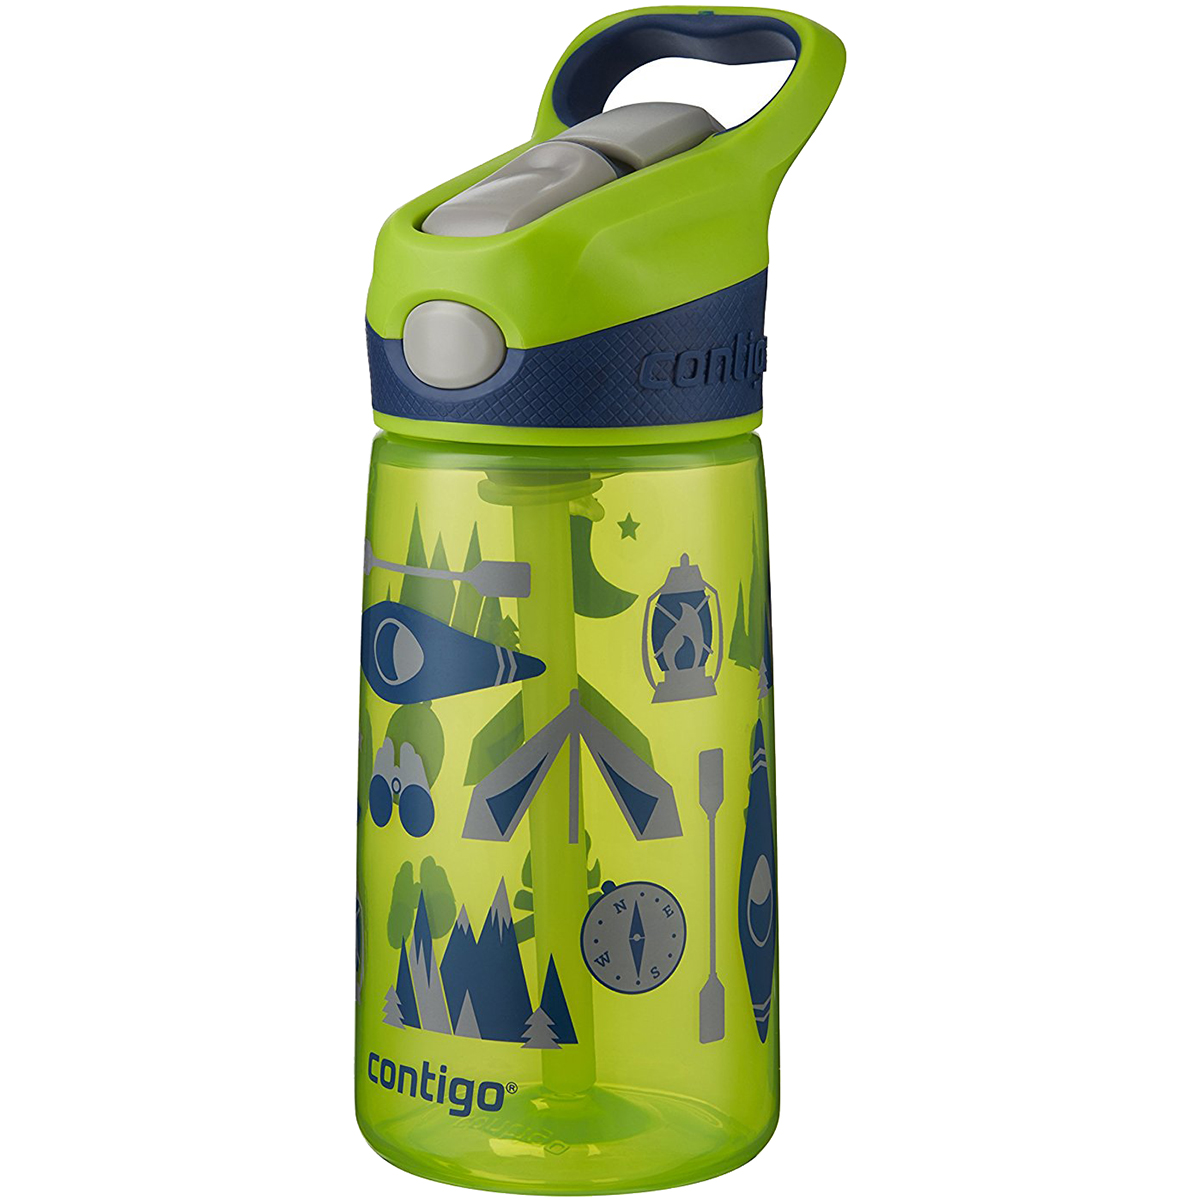 Contigo-14-oz-Kid-039-s-Striker-Autospout-Water-Bottle Indexbild 14